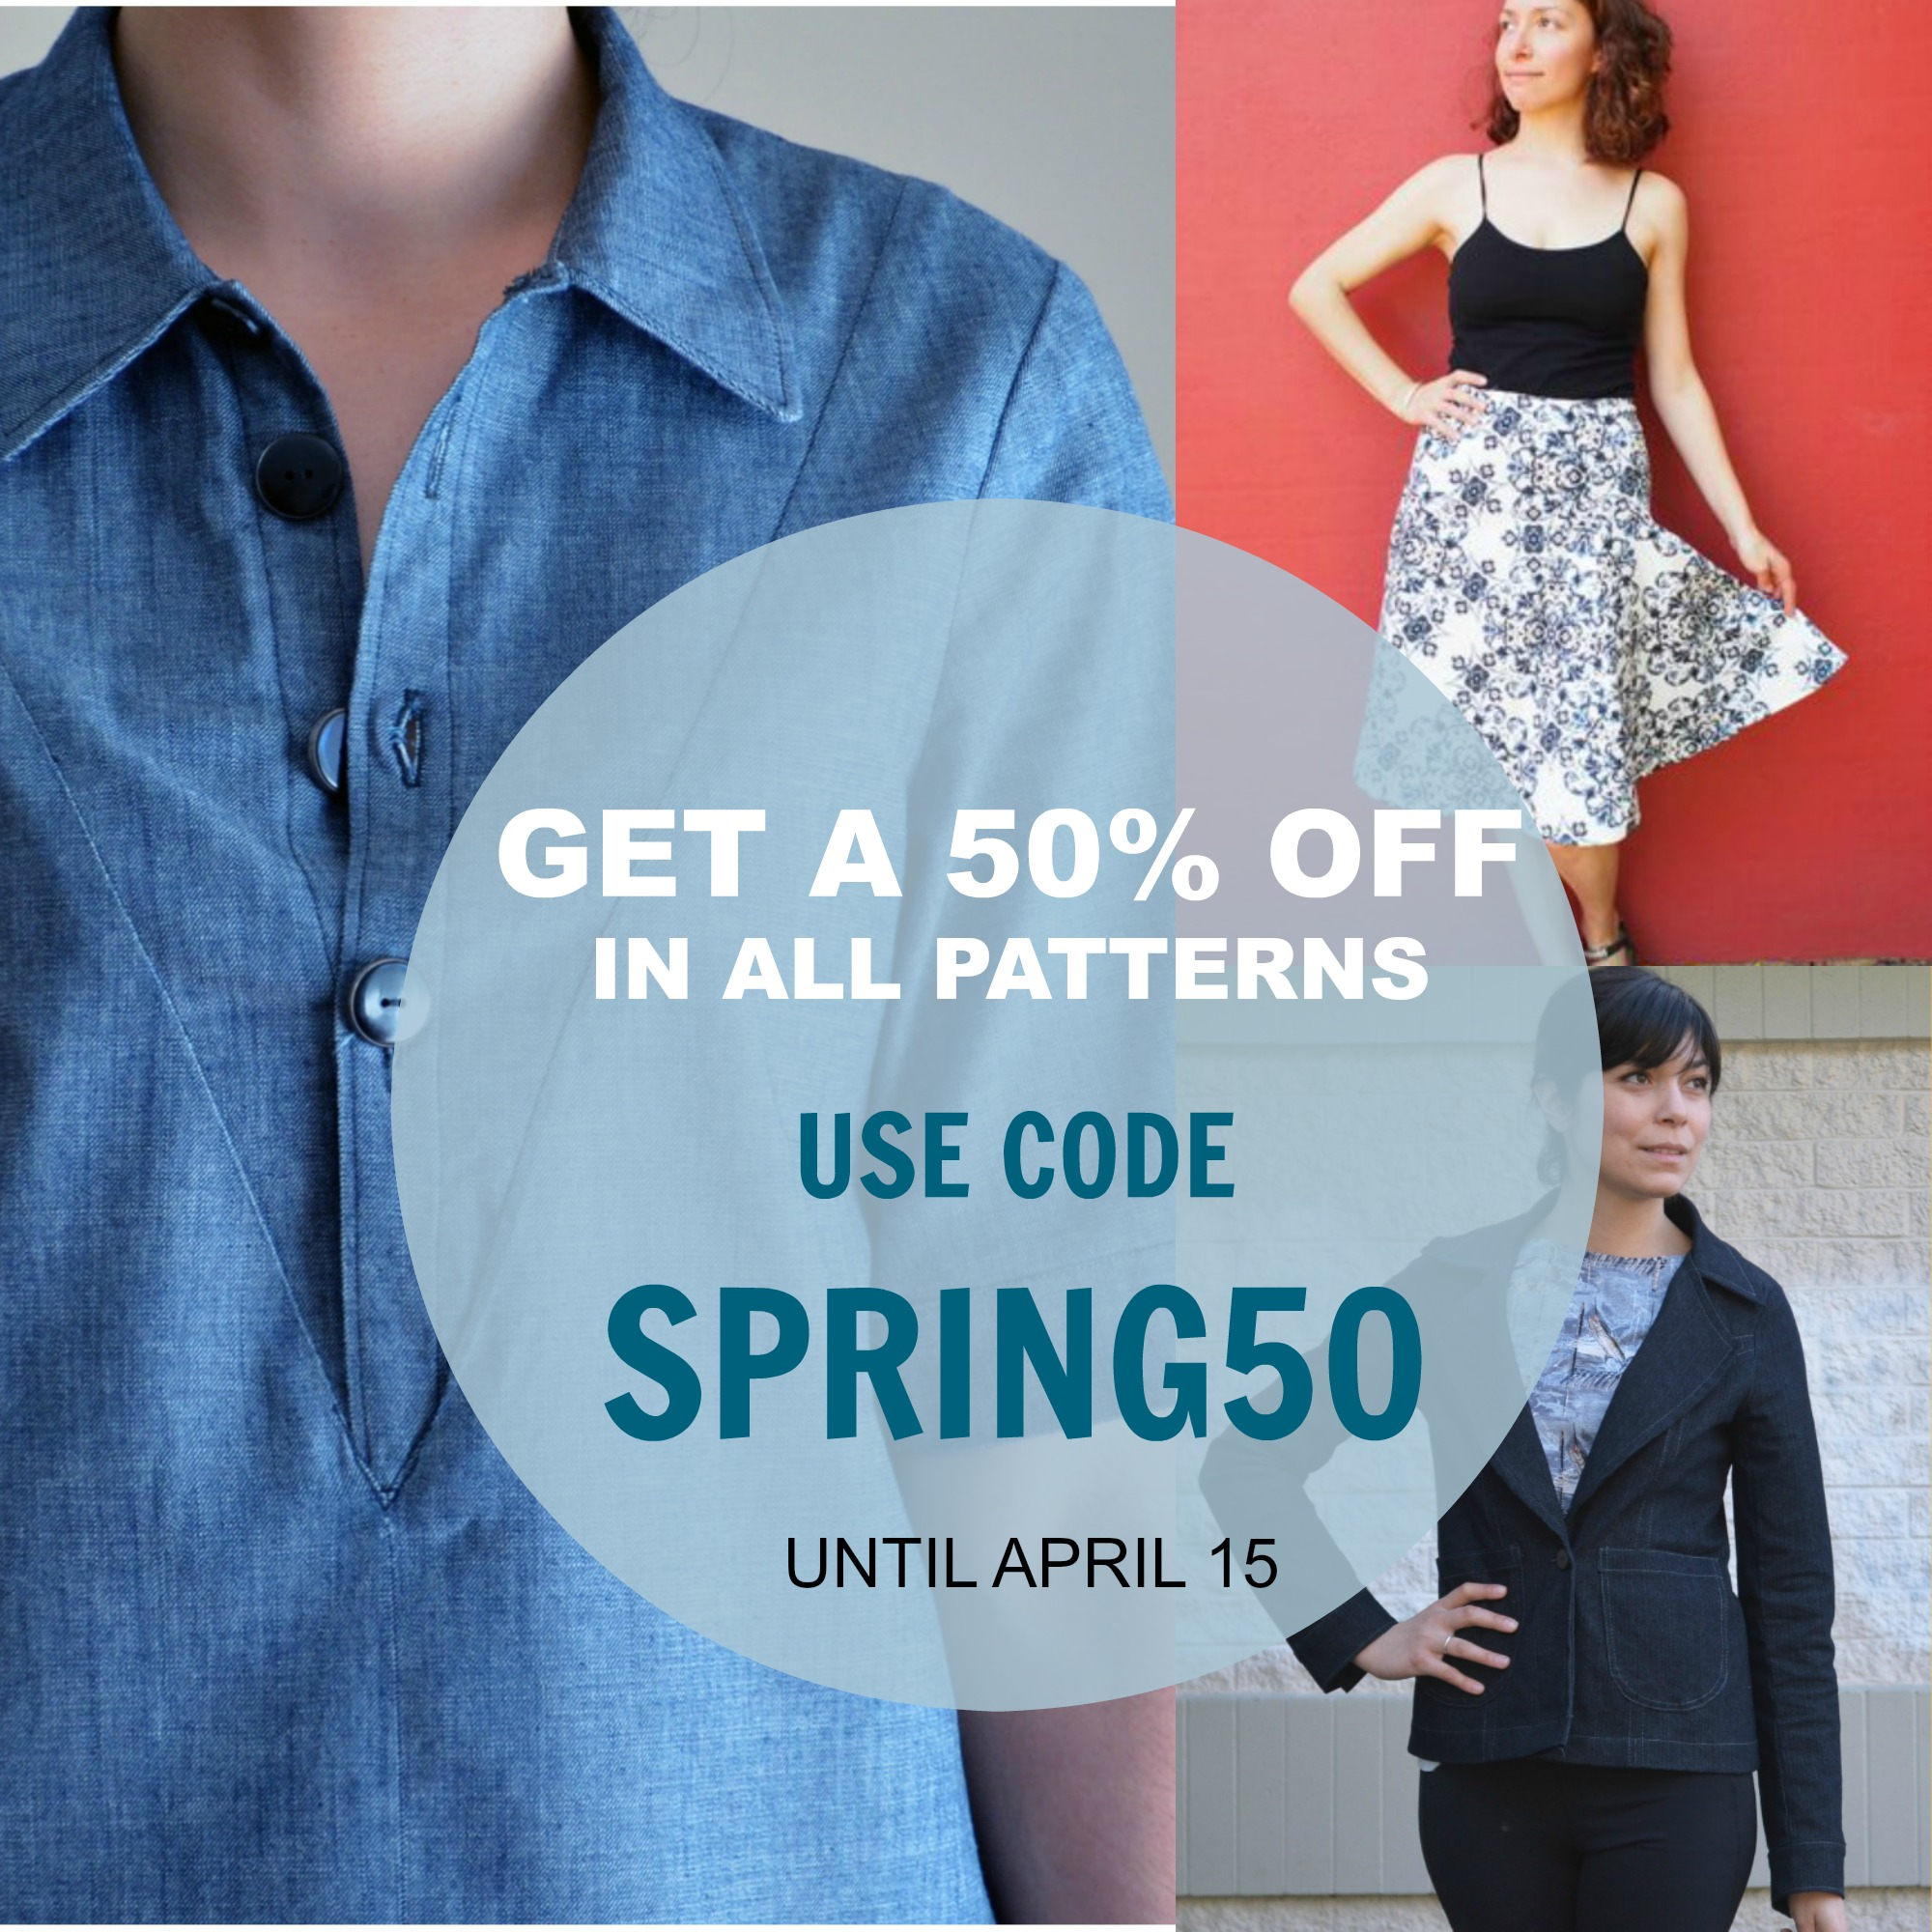 PATTERNS FOR SALE: GET A 50% STOREWIDE